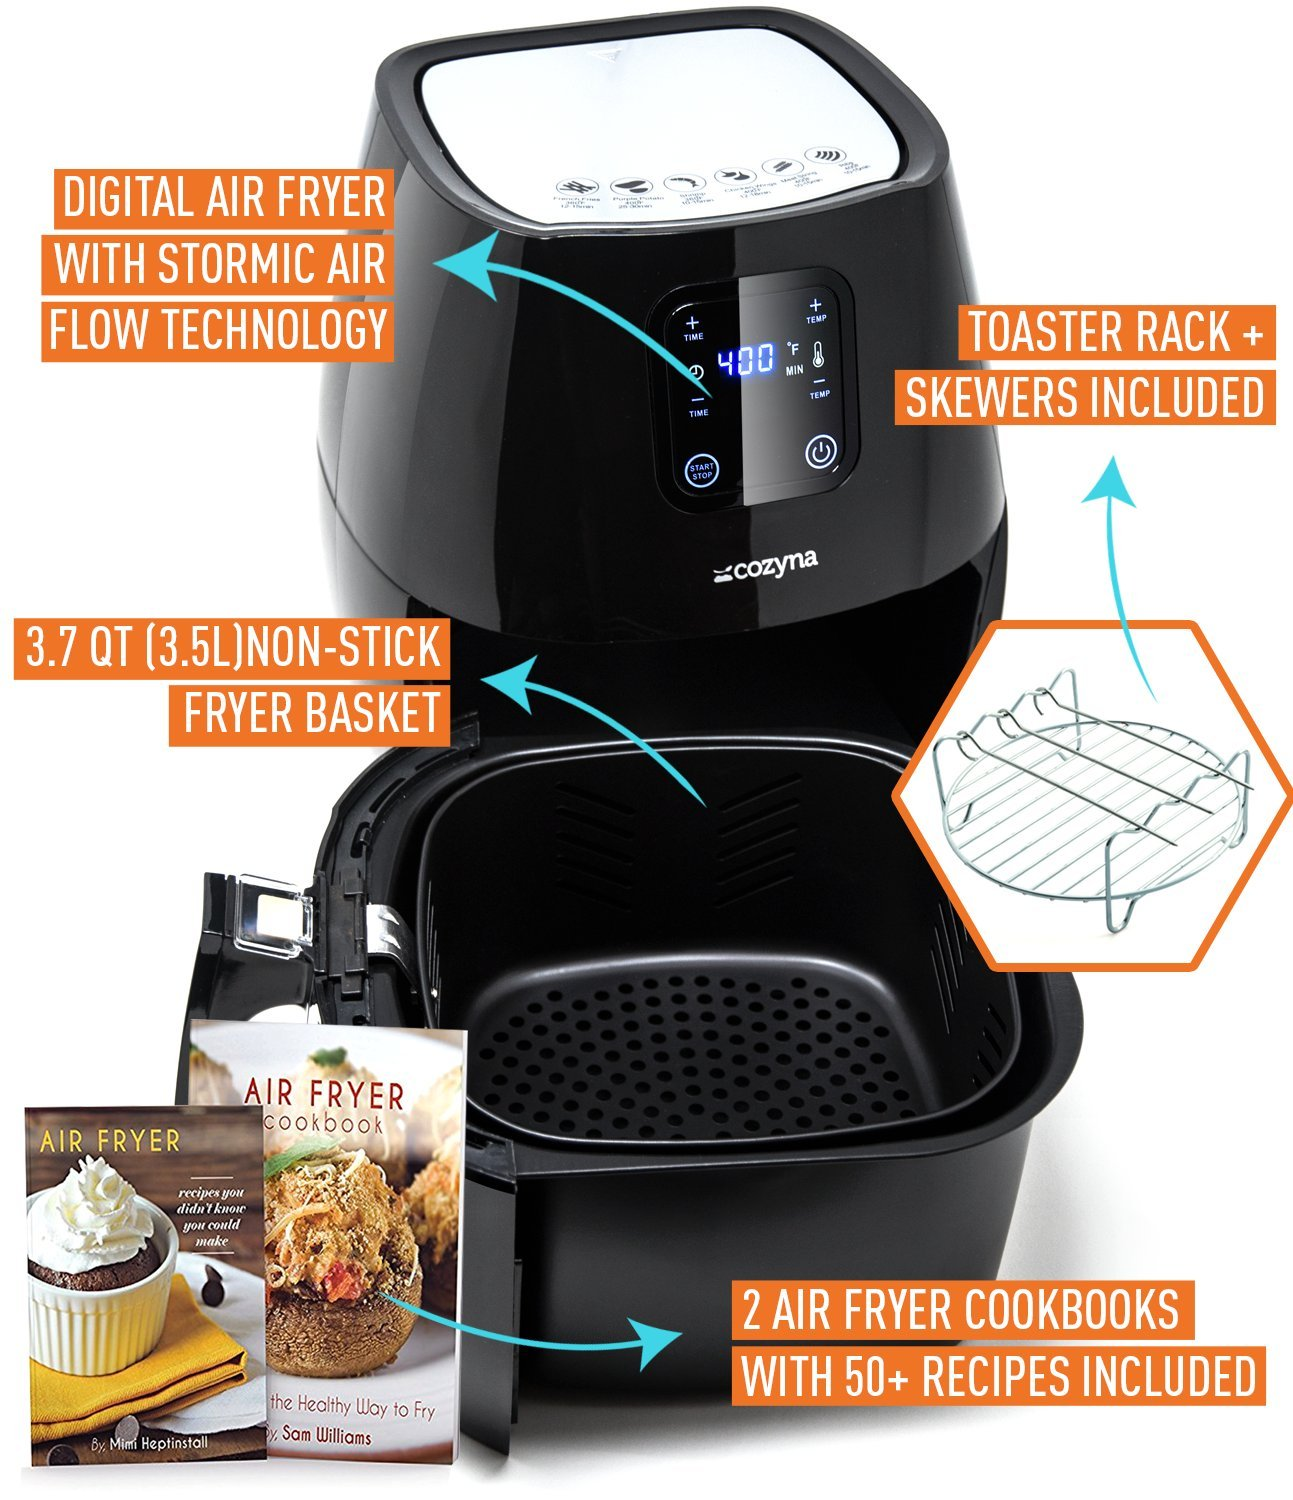 Cozyna SAF-32 Digital Air Fryer Touchscreen (3.7QT) with 2 airfryer cookbooks and a Skewer Rack Accessory by Cozyna (Image #2)